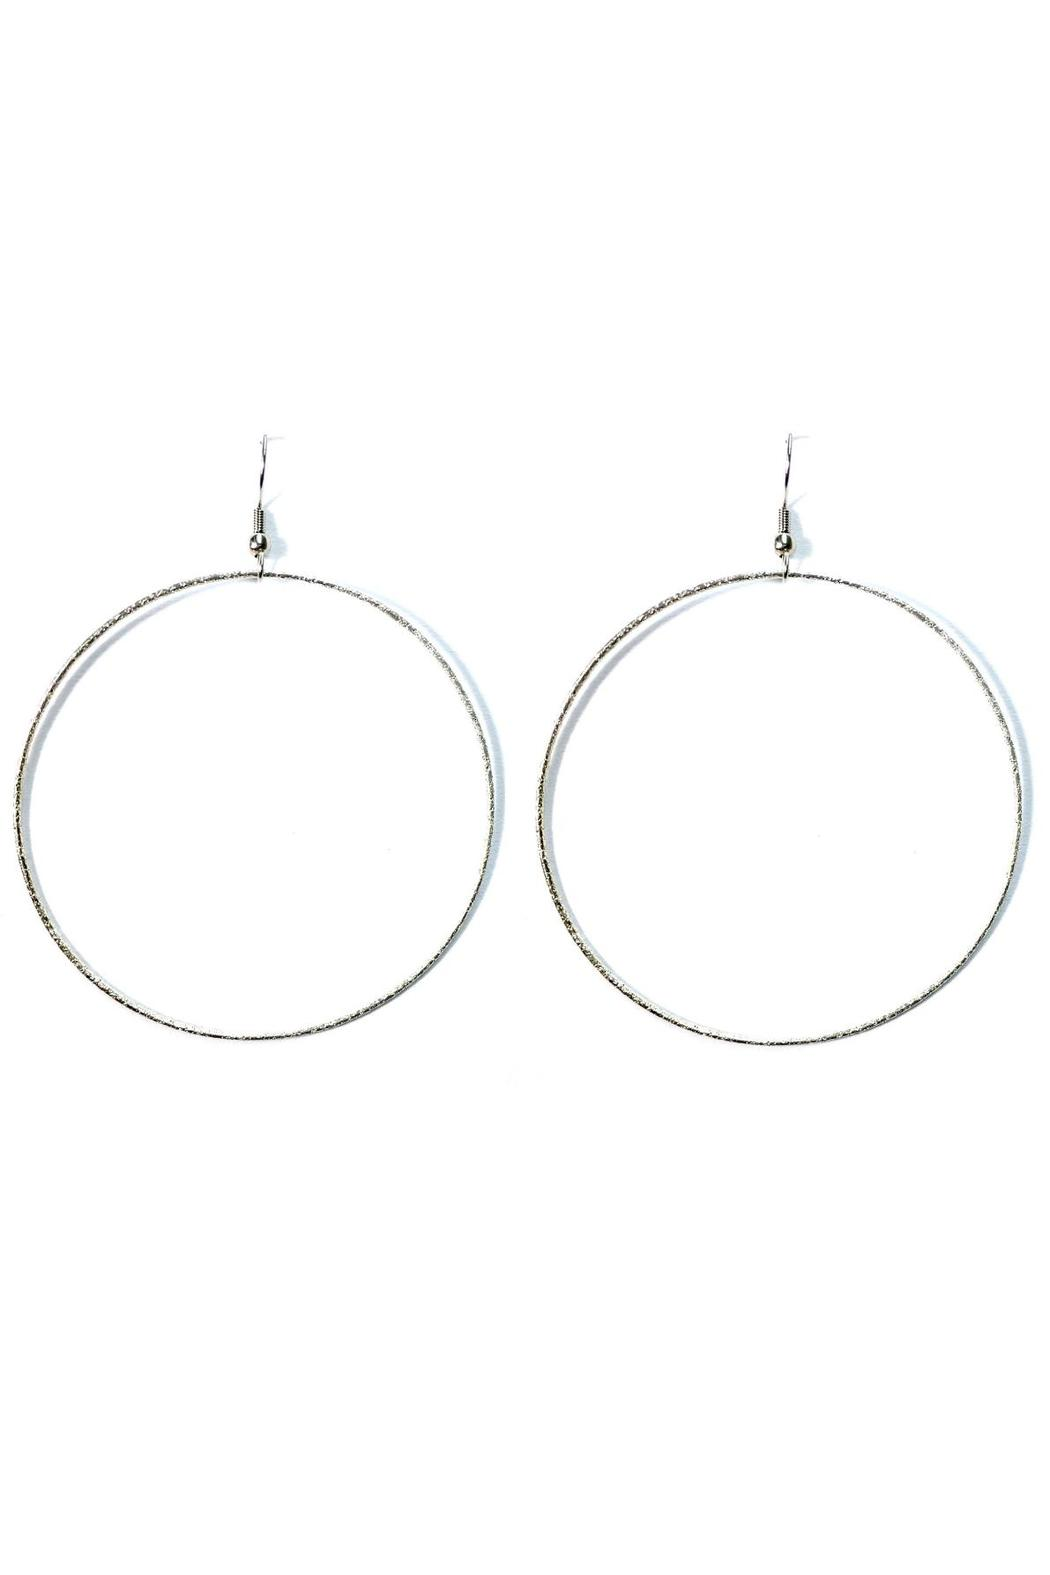 Love's Hangover Creations Silver Hoop Earrings - Main Image